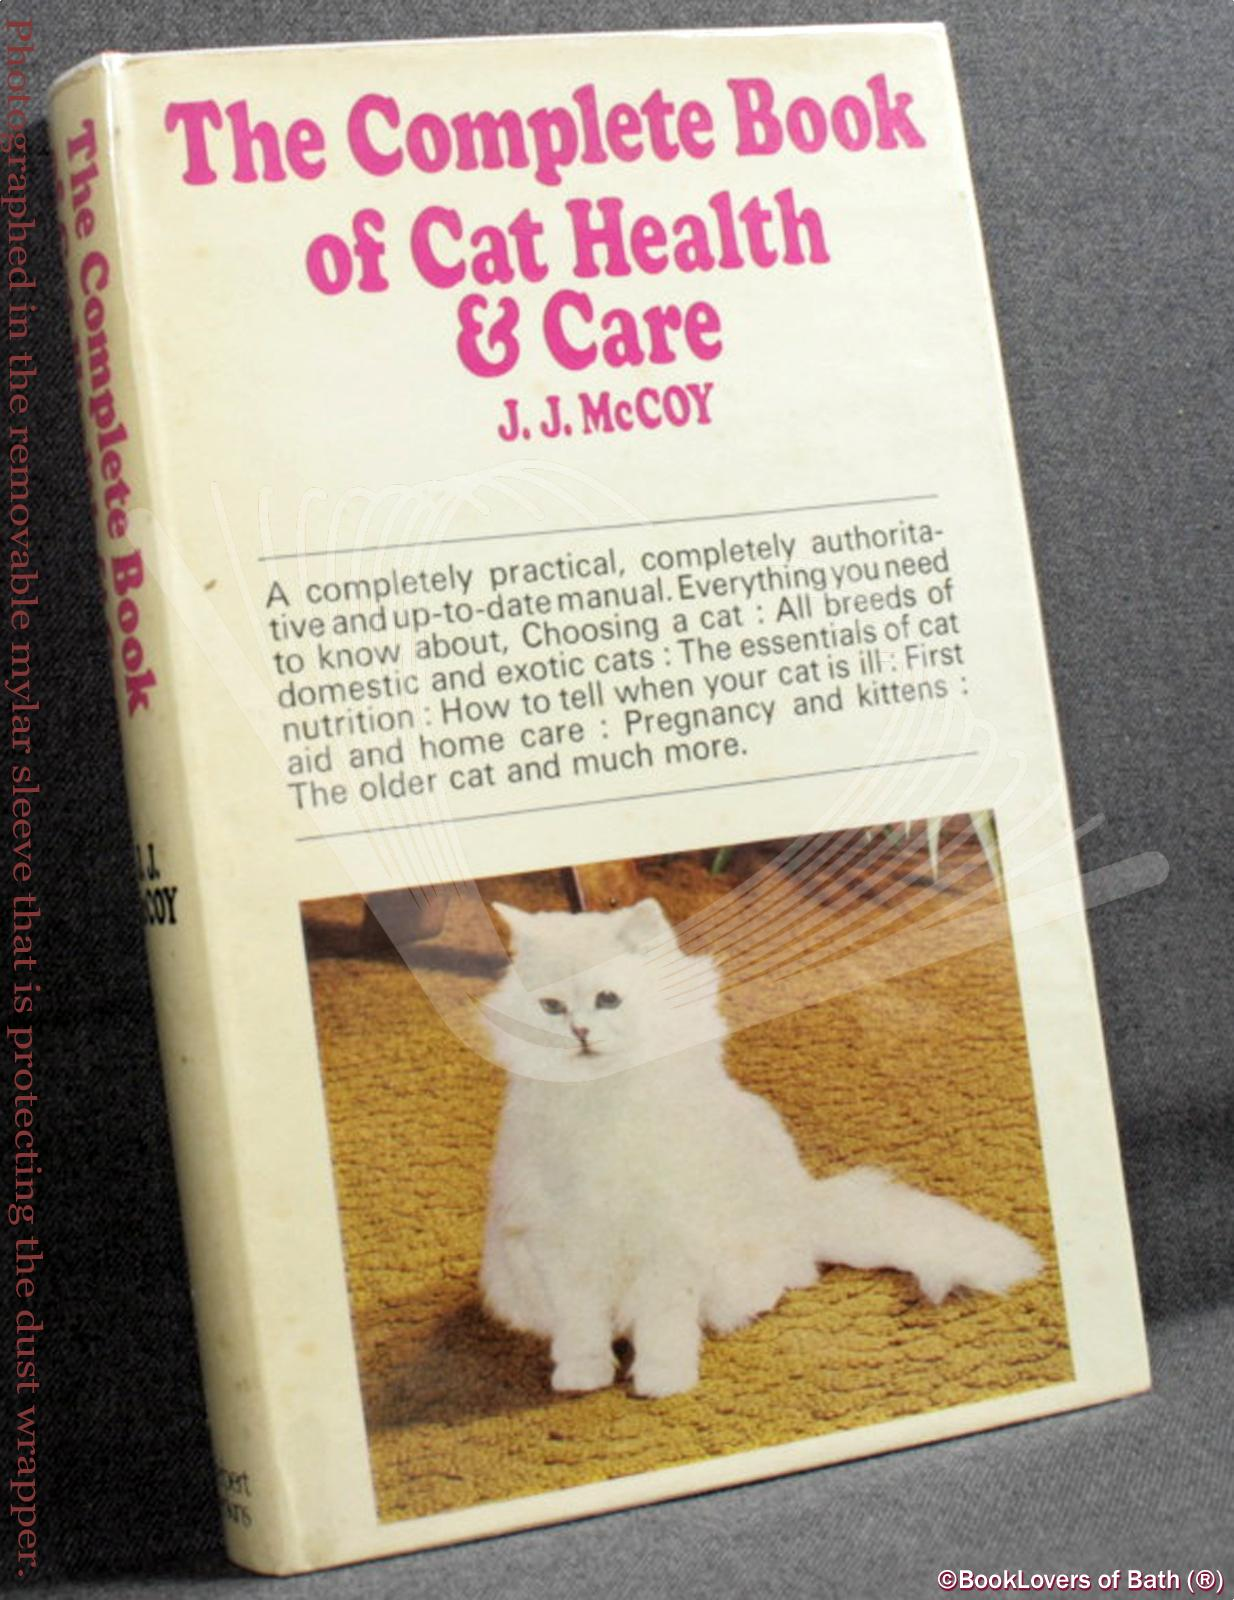 The Complete Book of Cat Health & Care - J. J. (Joseph Jerome) Mccoy